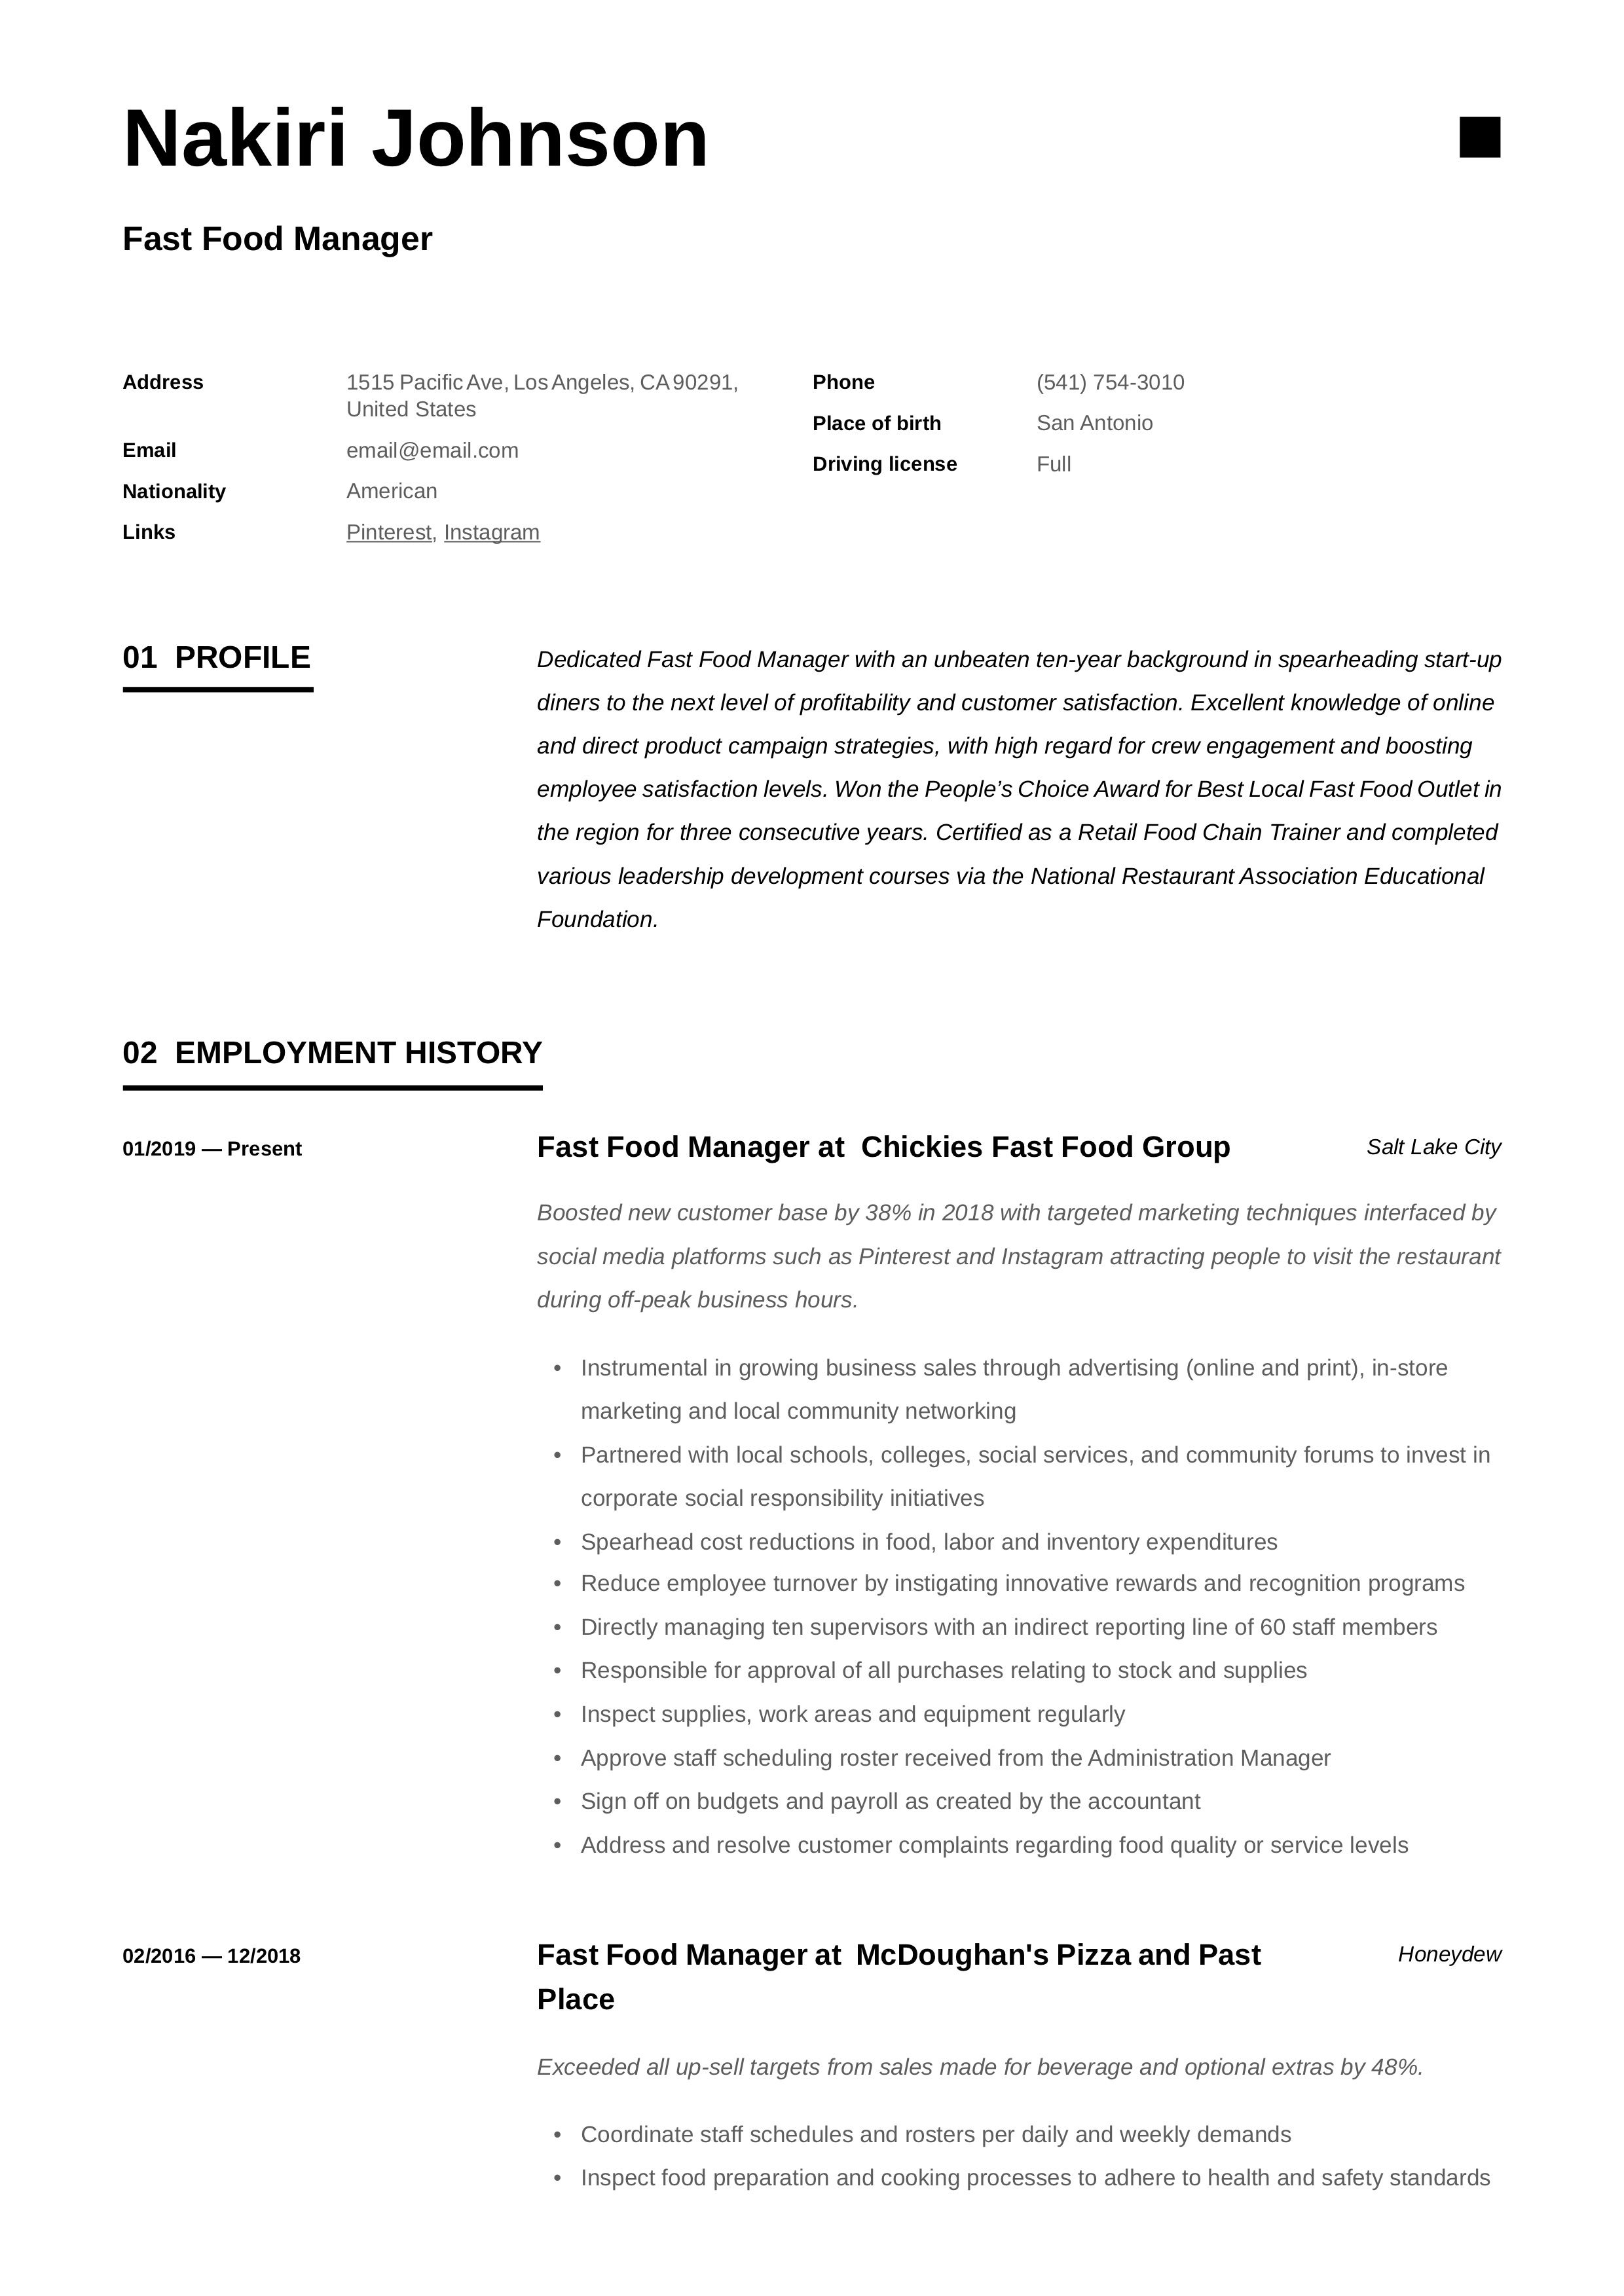 Fast food manager resume writing guide in 2020 with